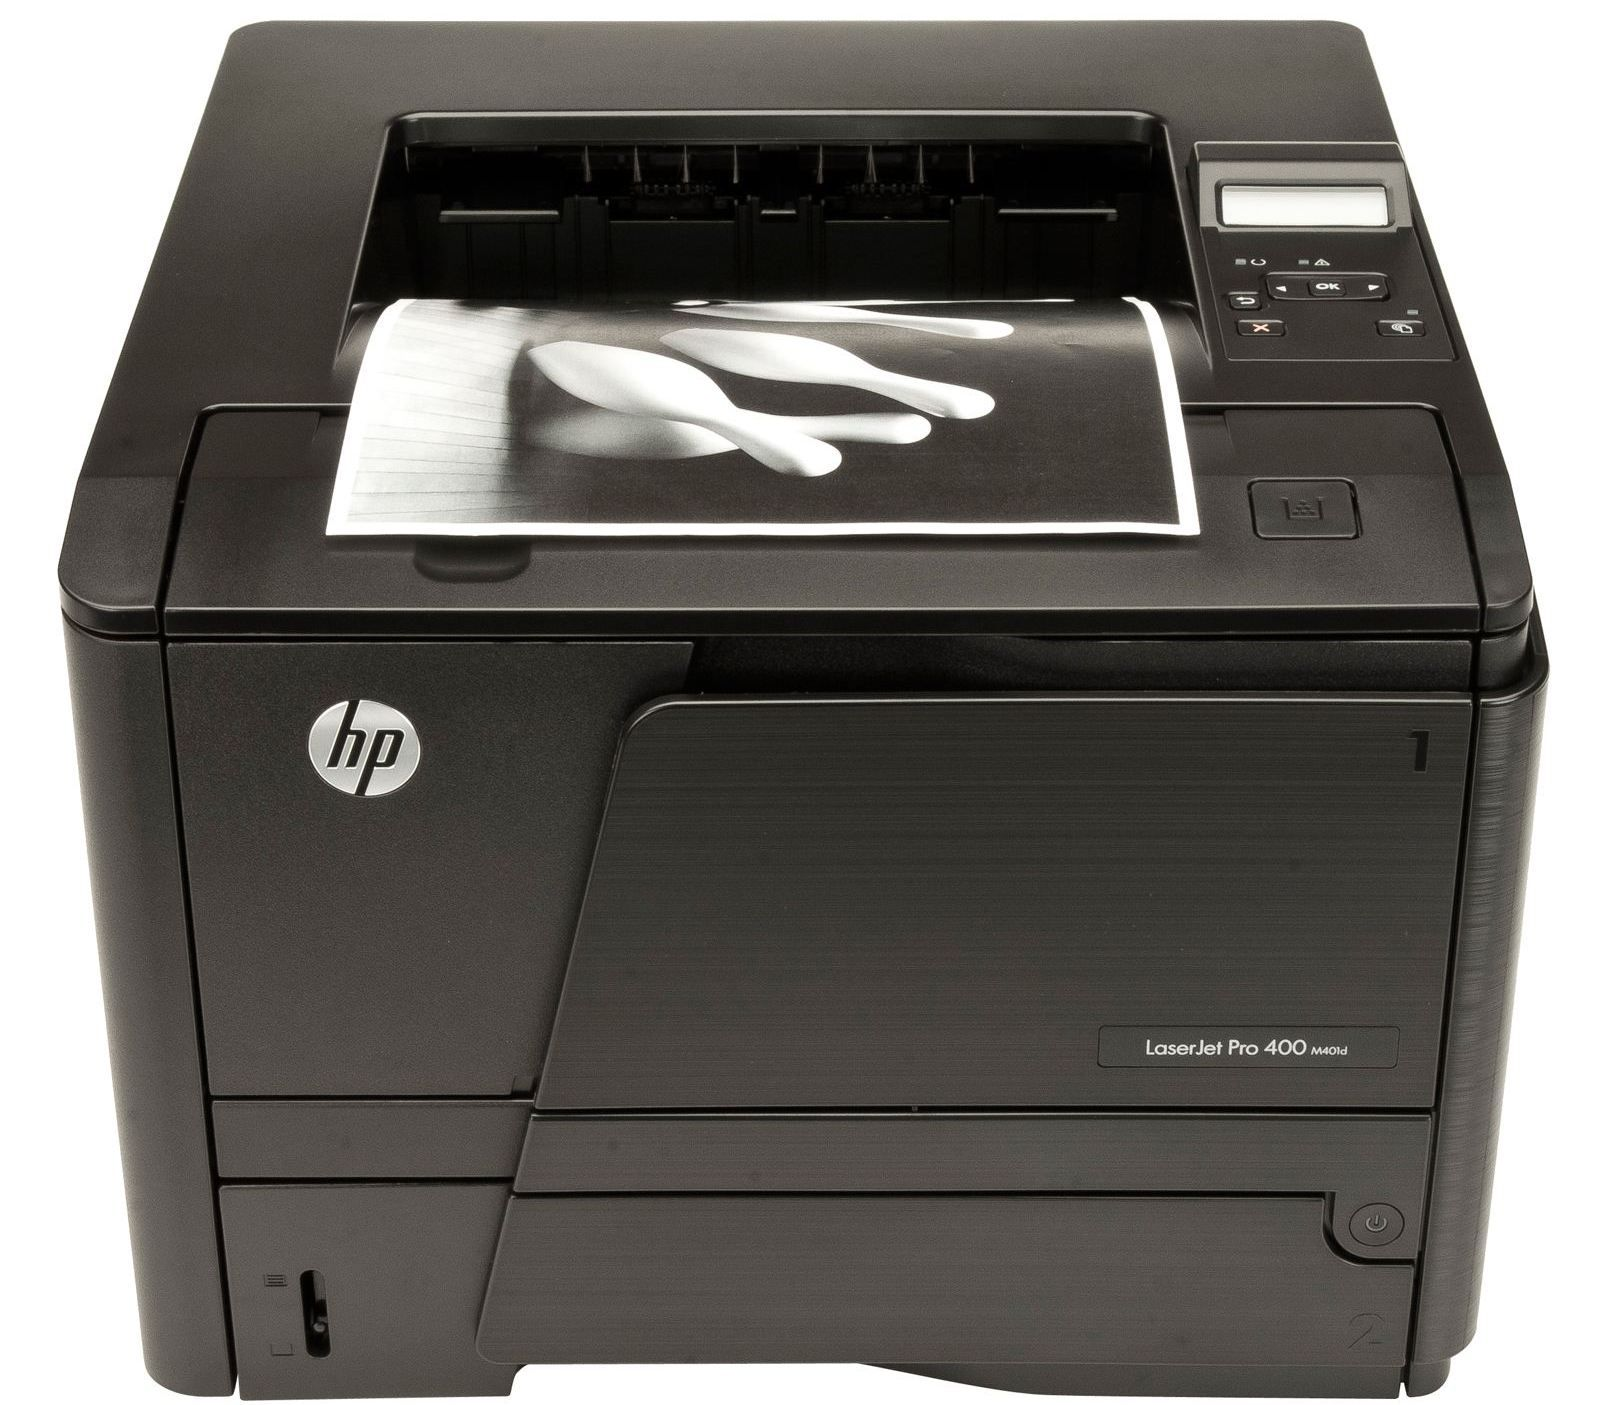 Hp Laserjet Pro 400 M401d Printer Price In Pakistan Mega Pk